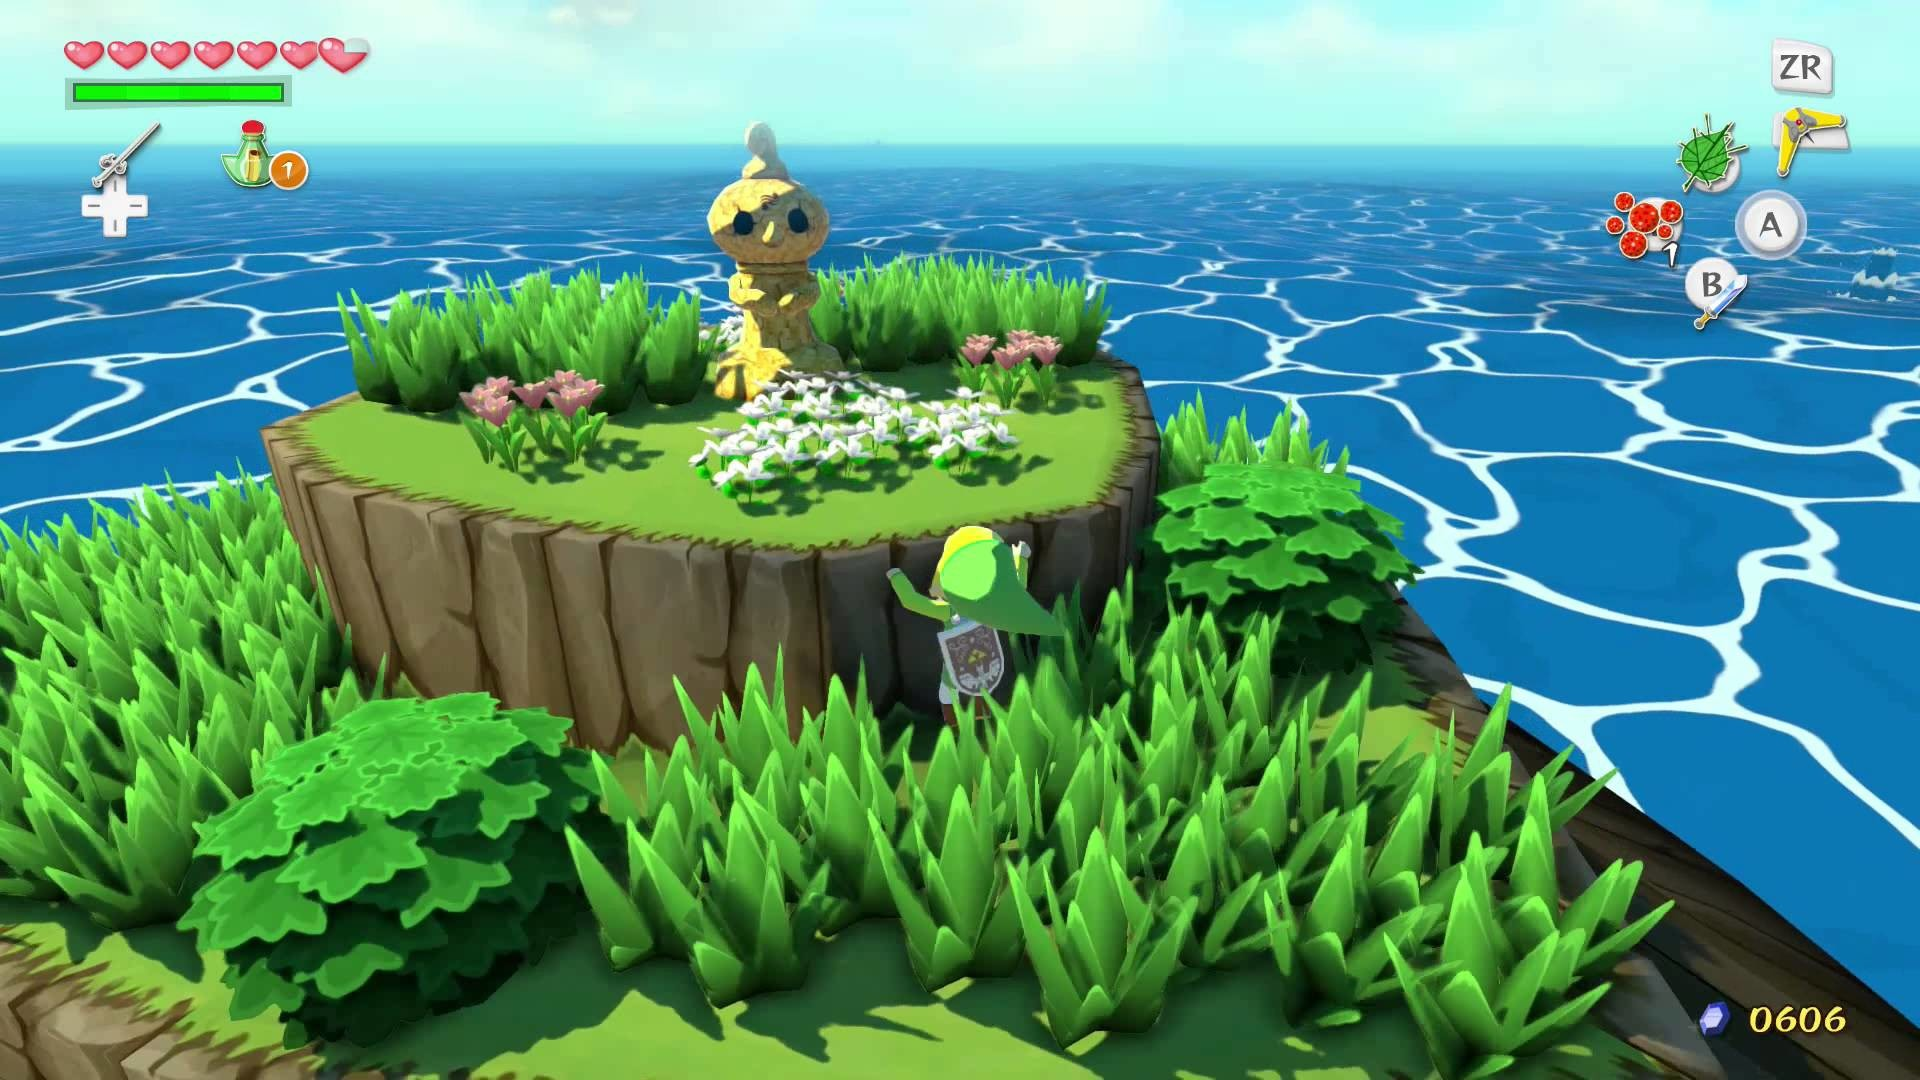 wind waker hd – Leaves with simple detail with only 3 shades of green and  same